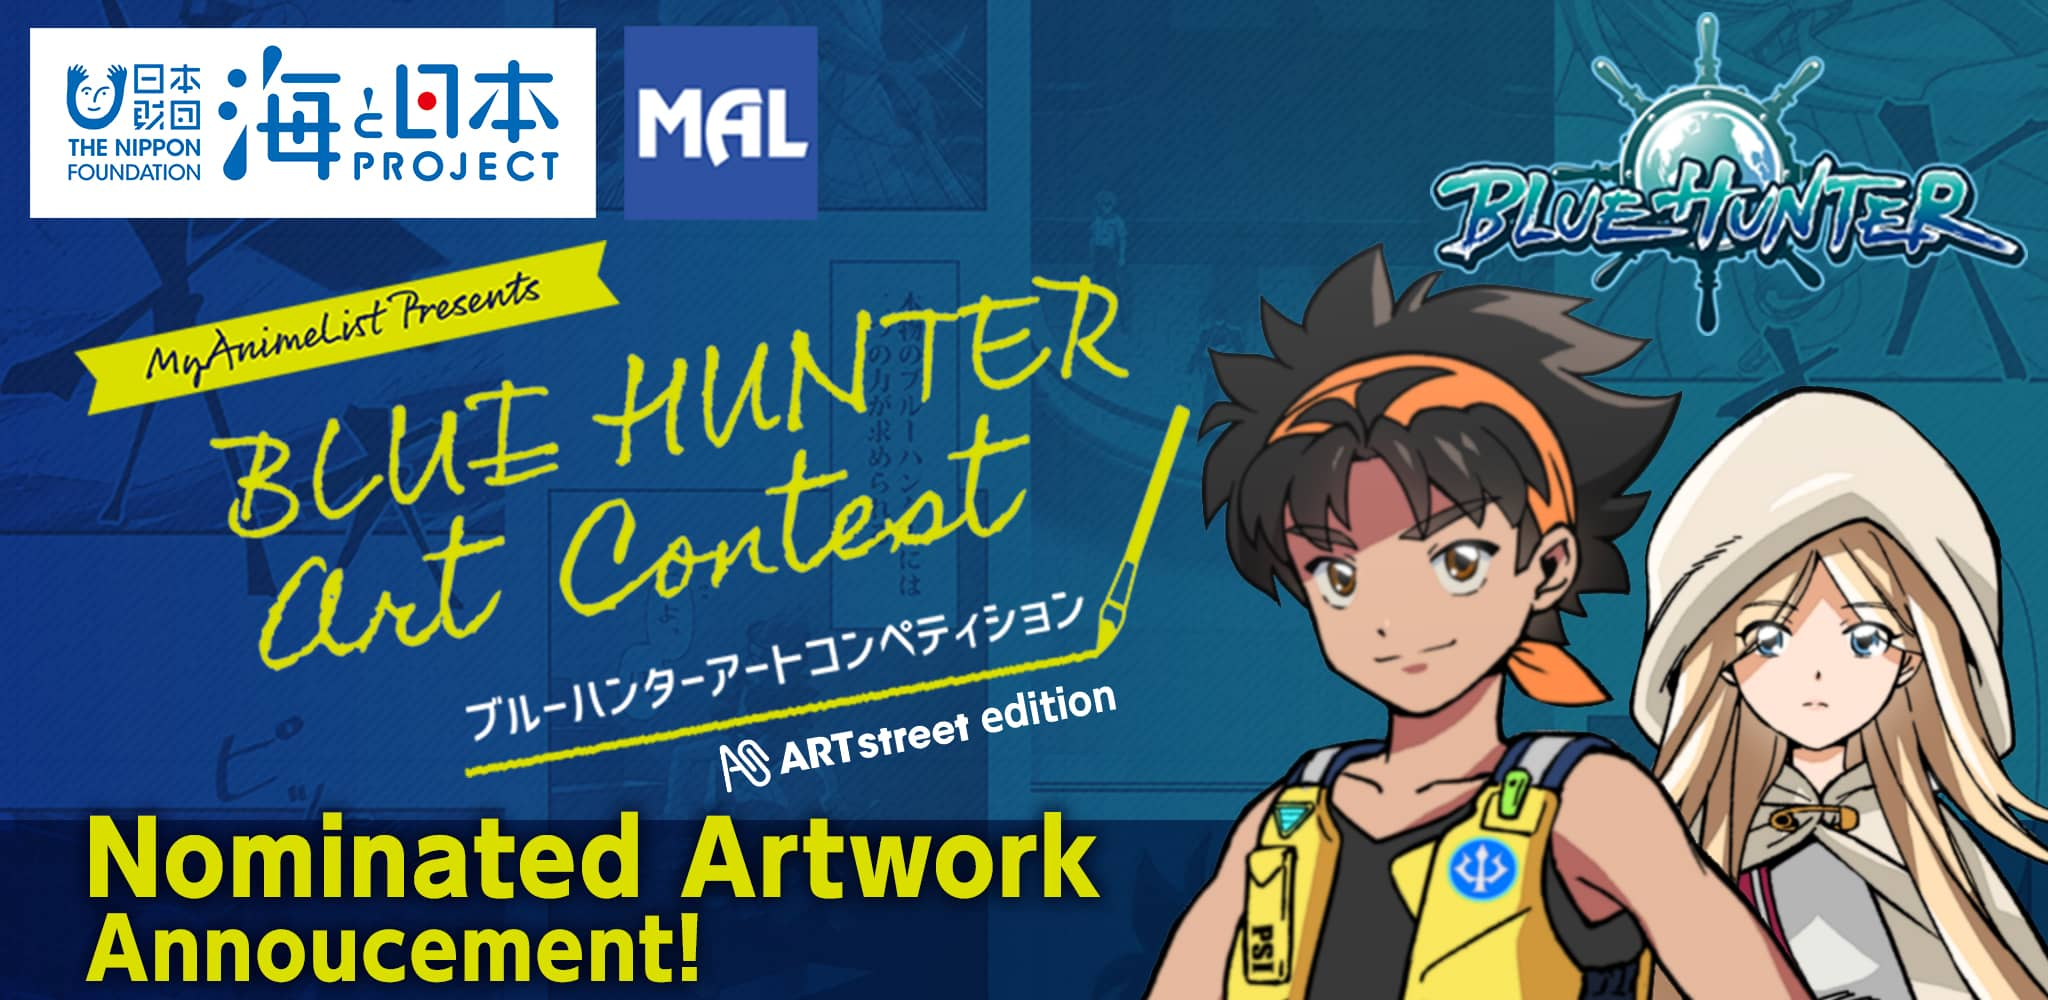 BLUE HUNTER Art Contest Results   Contest - ART street by MediBang